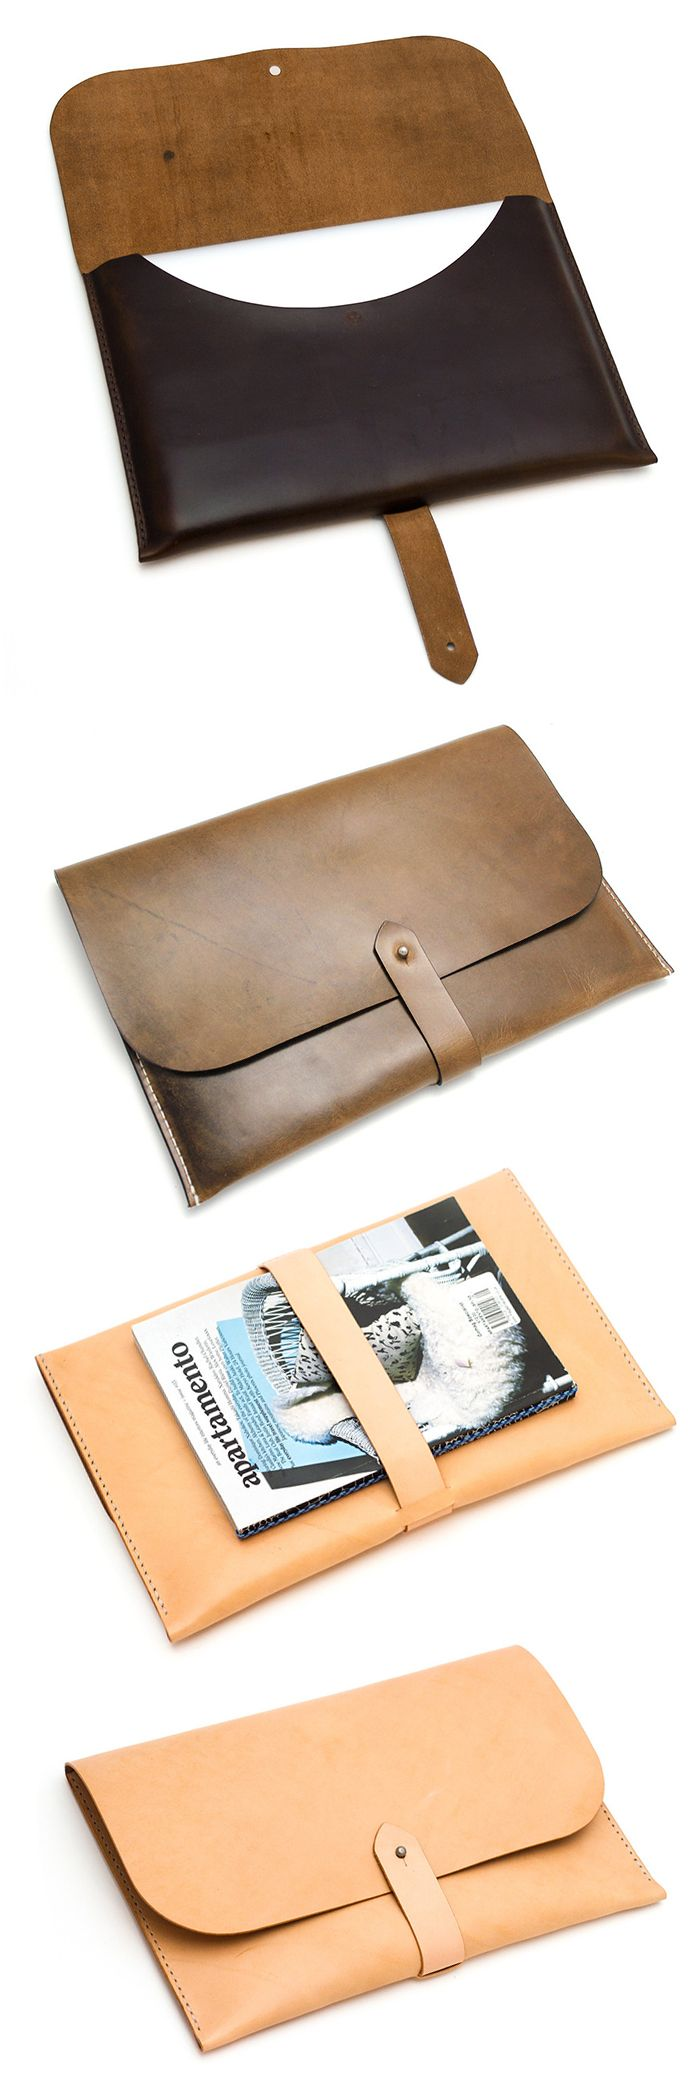 Leather Passport Case - Glistening Passport Case by VIDA VIDA Z92vcs